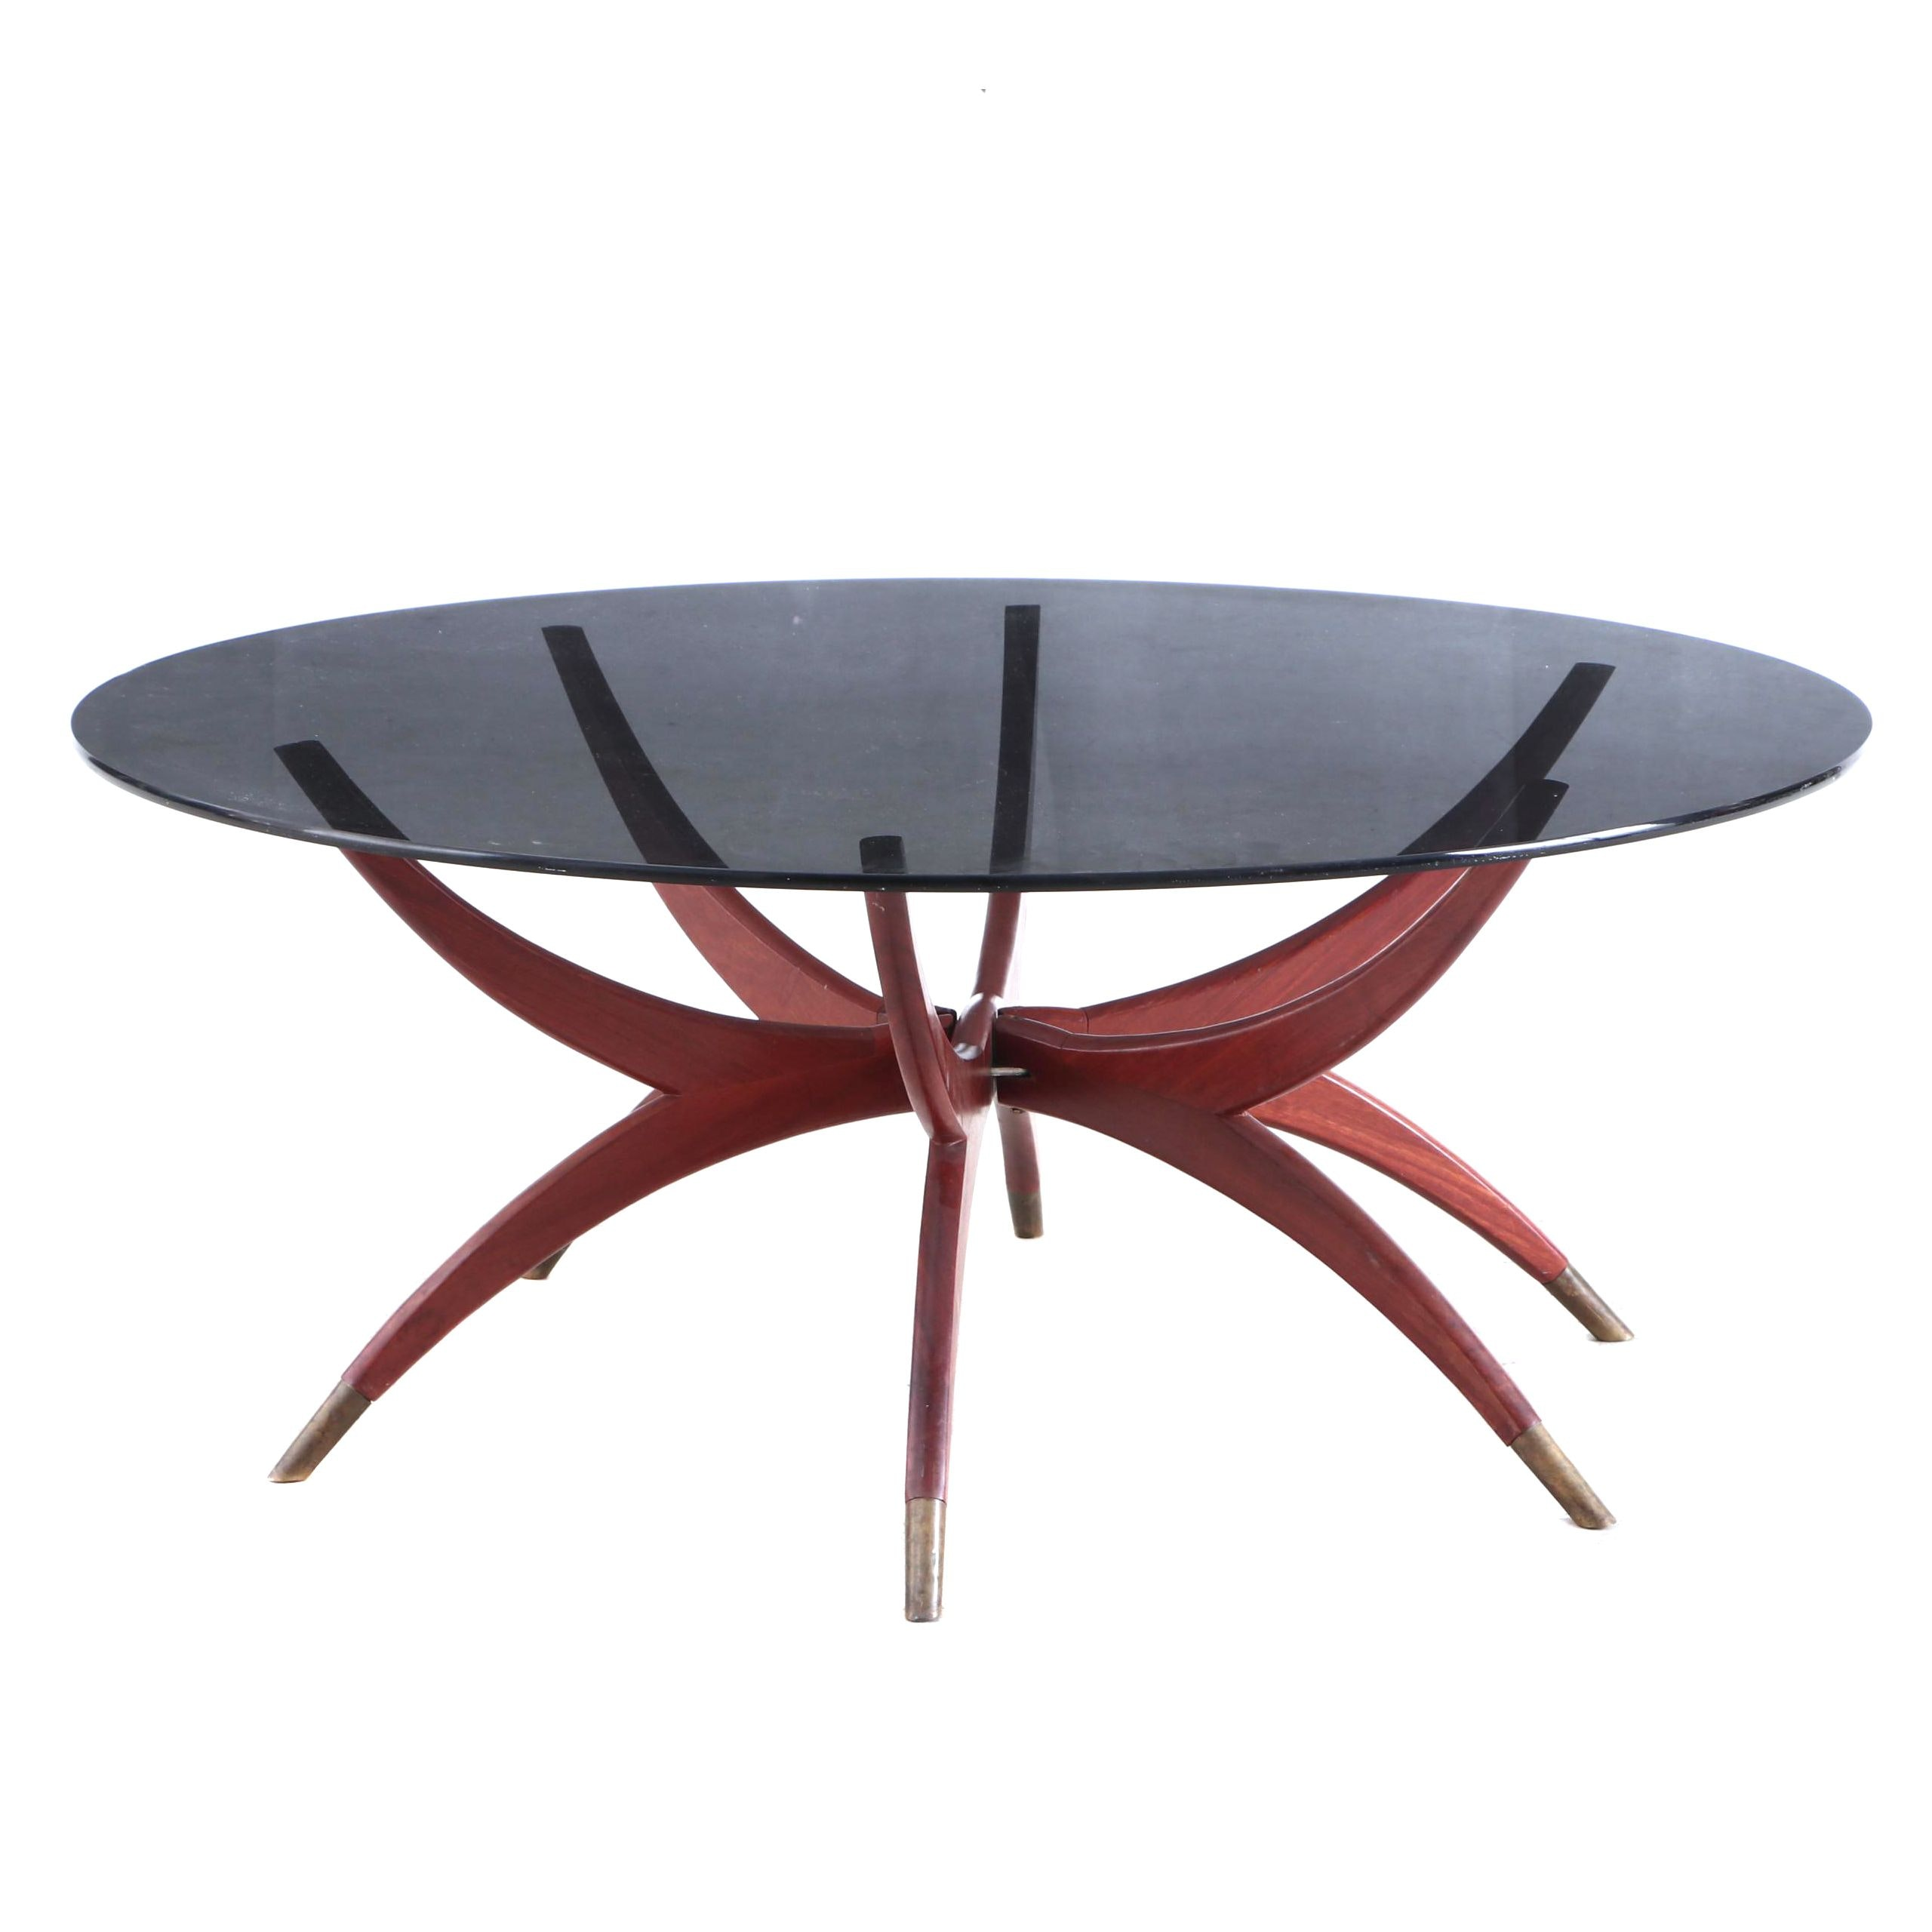 Mid Century Modern Smoke Glass Coffee Table with Folding Wood Base